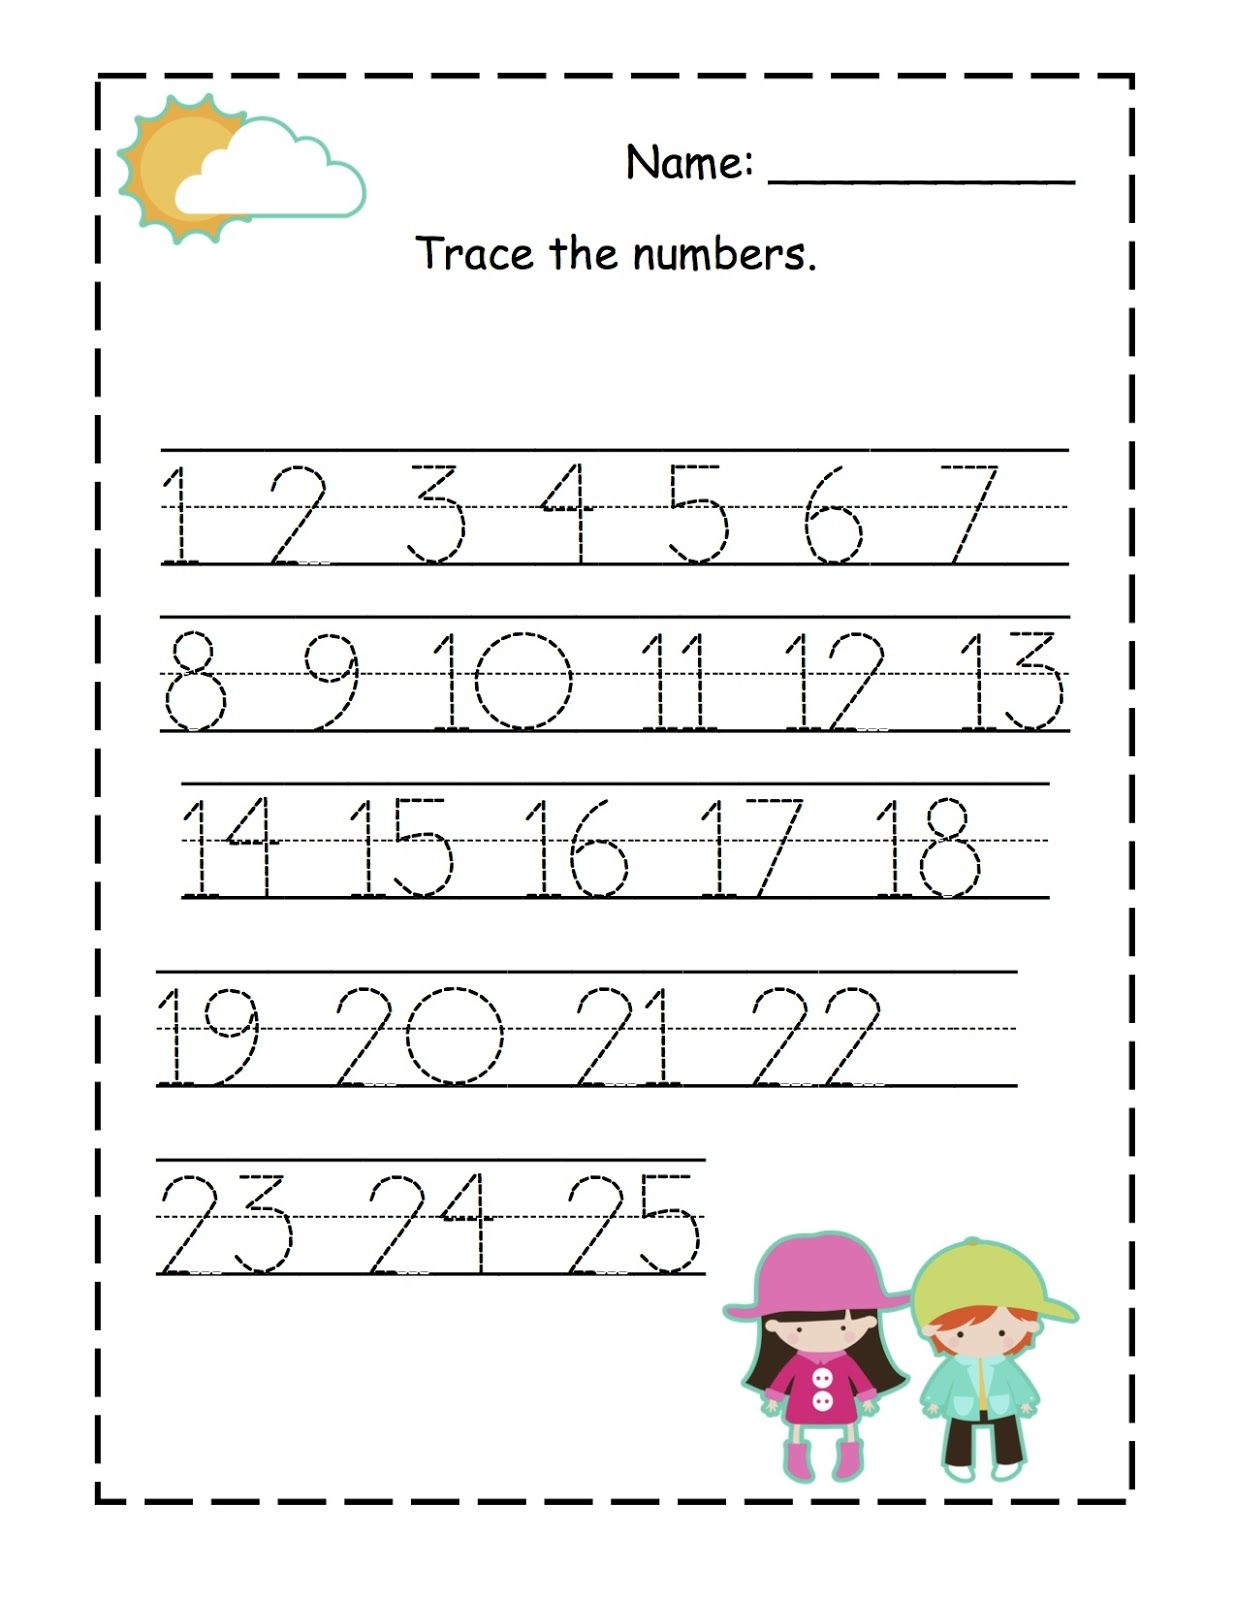 Weather+trace+the+numbers+1-25.jpg 1,236×1,600 pixels | Recipes ...